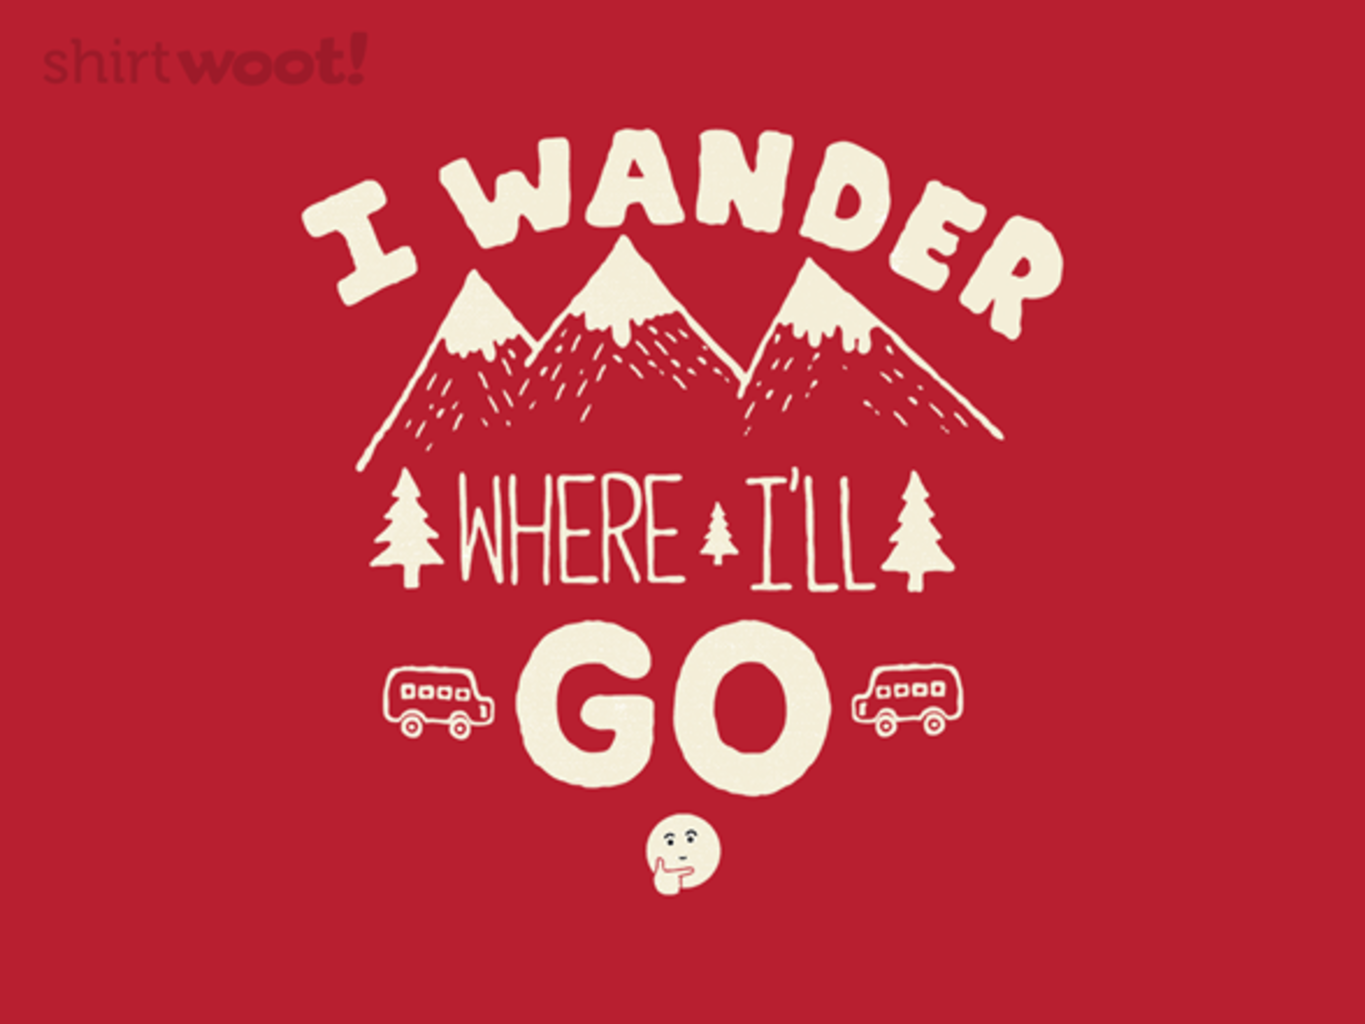 Woot!: I Wander - $8.00 + $5 standard shipping